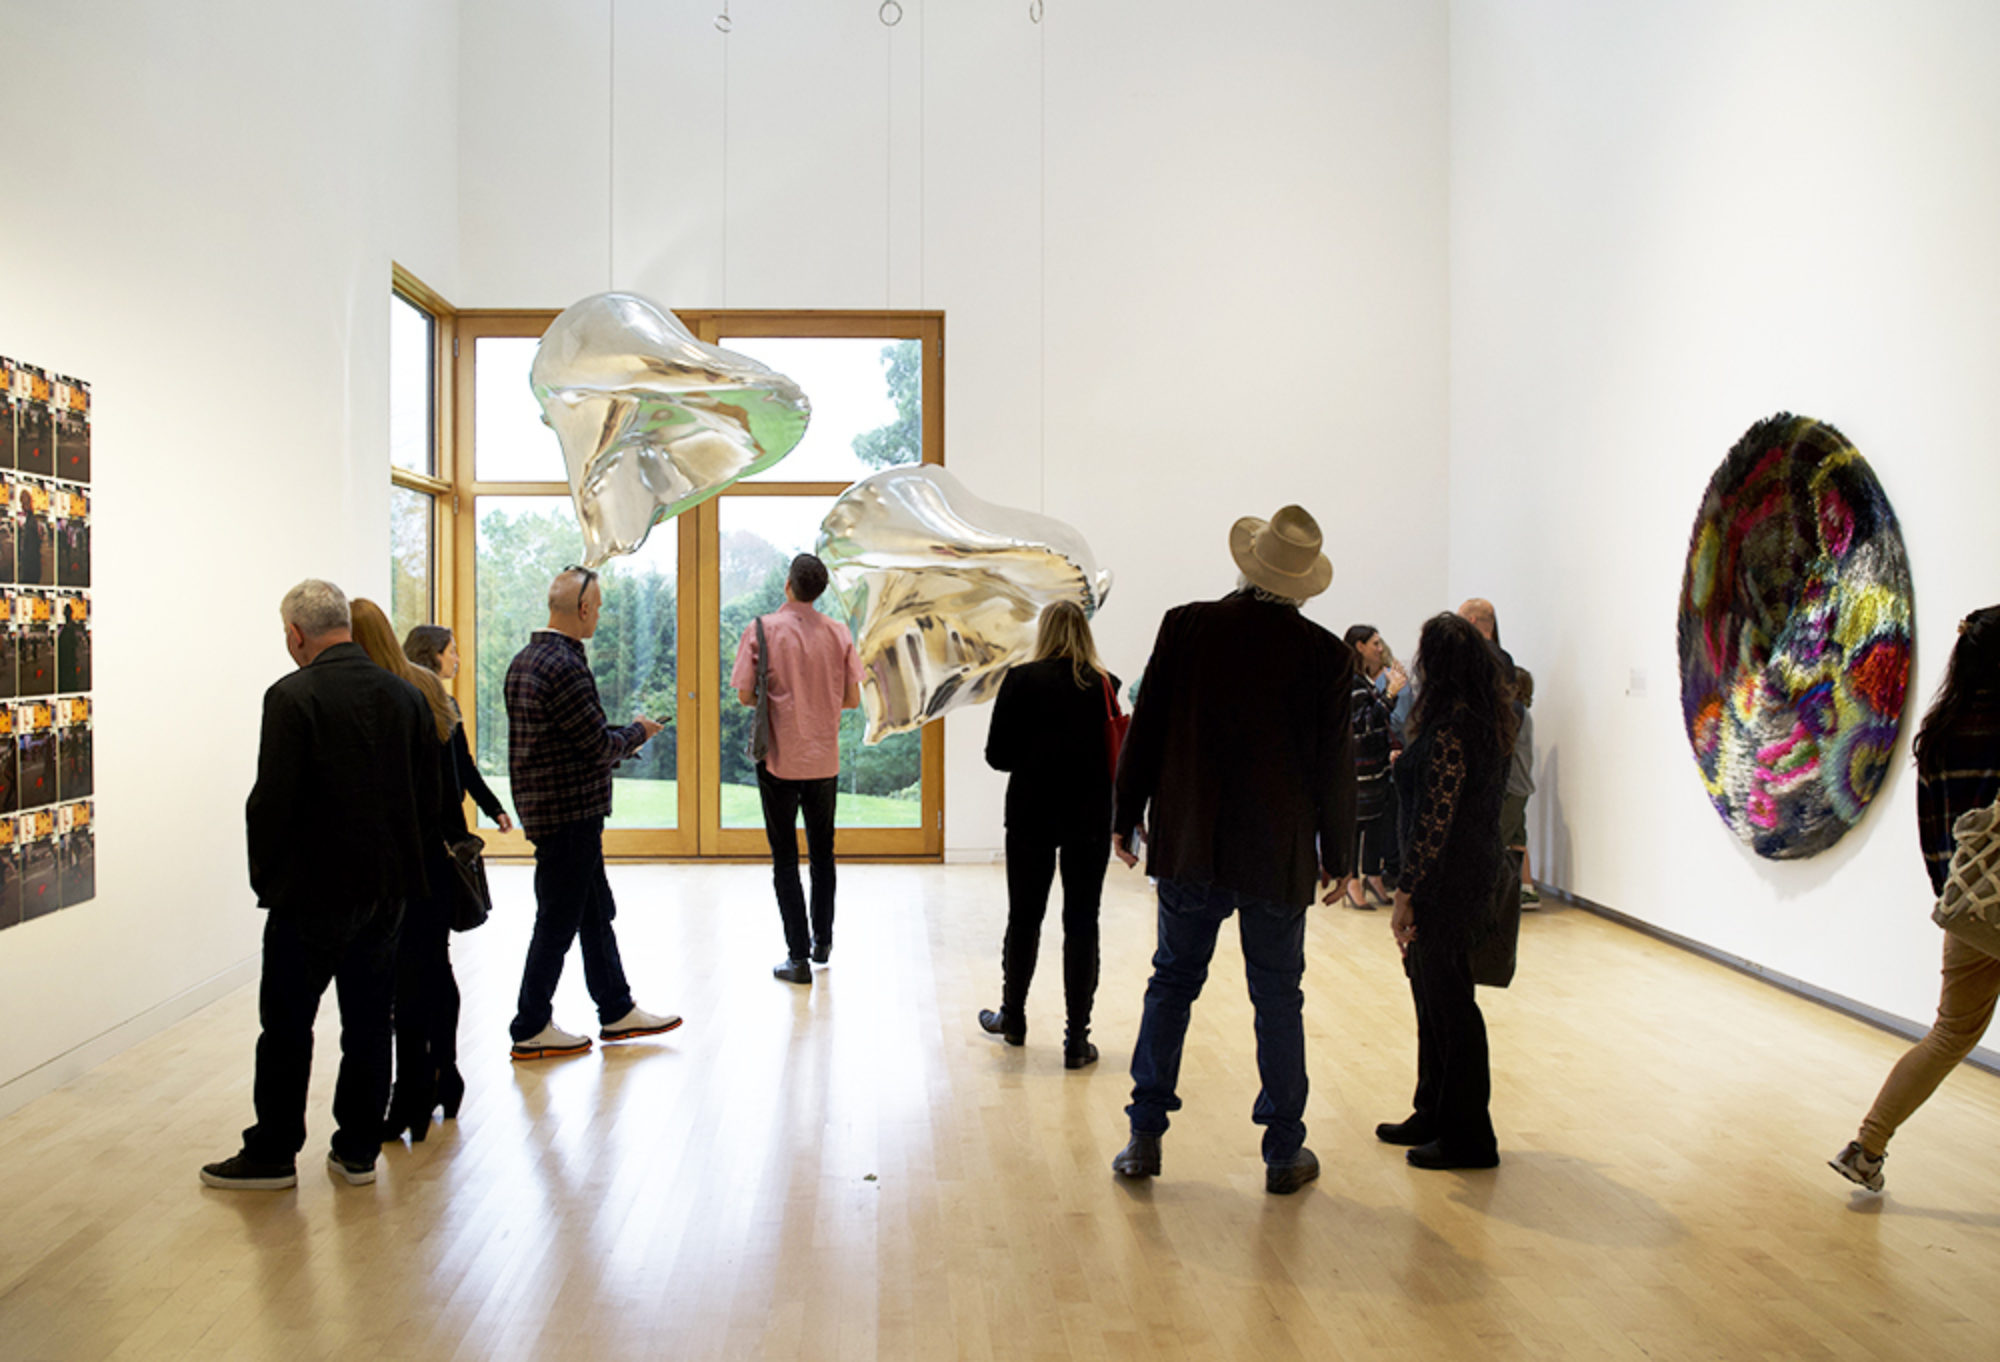 Visitors in a gallery at The Aldrich Contemporary Art Museum observing works of art on view